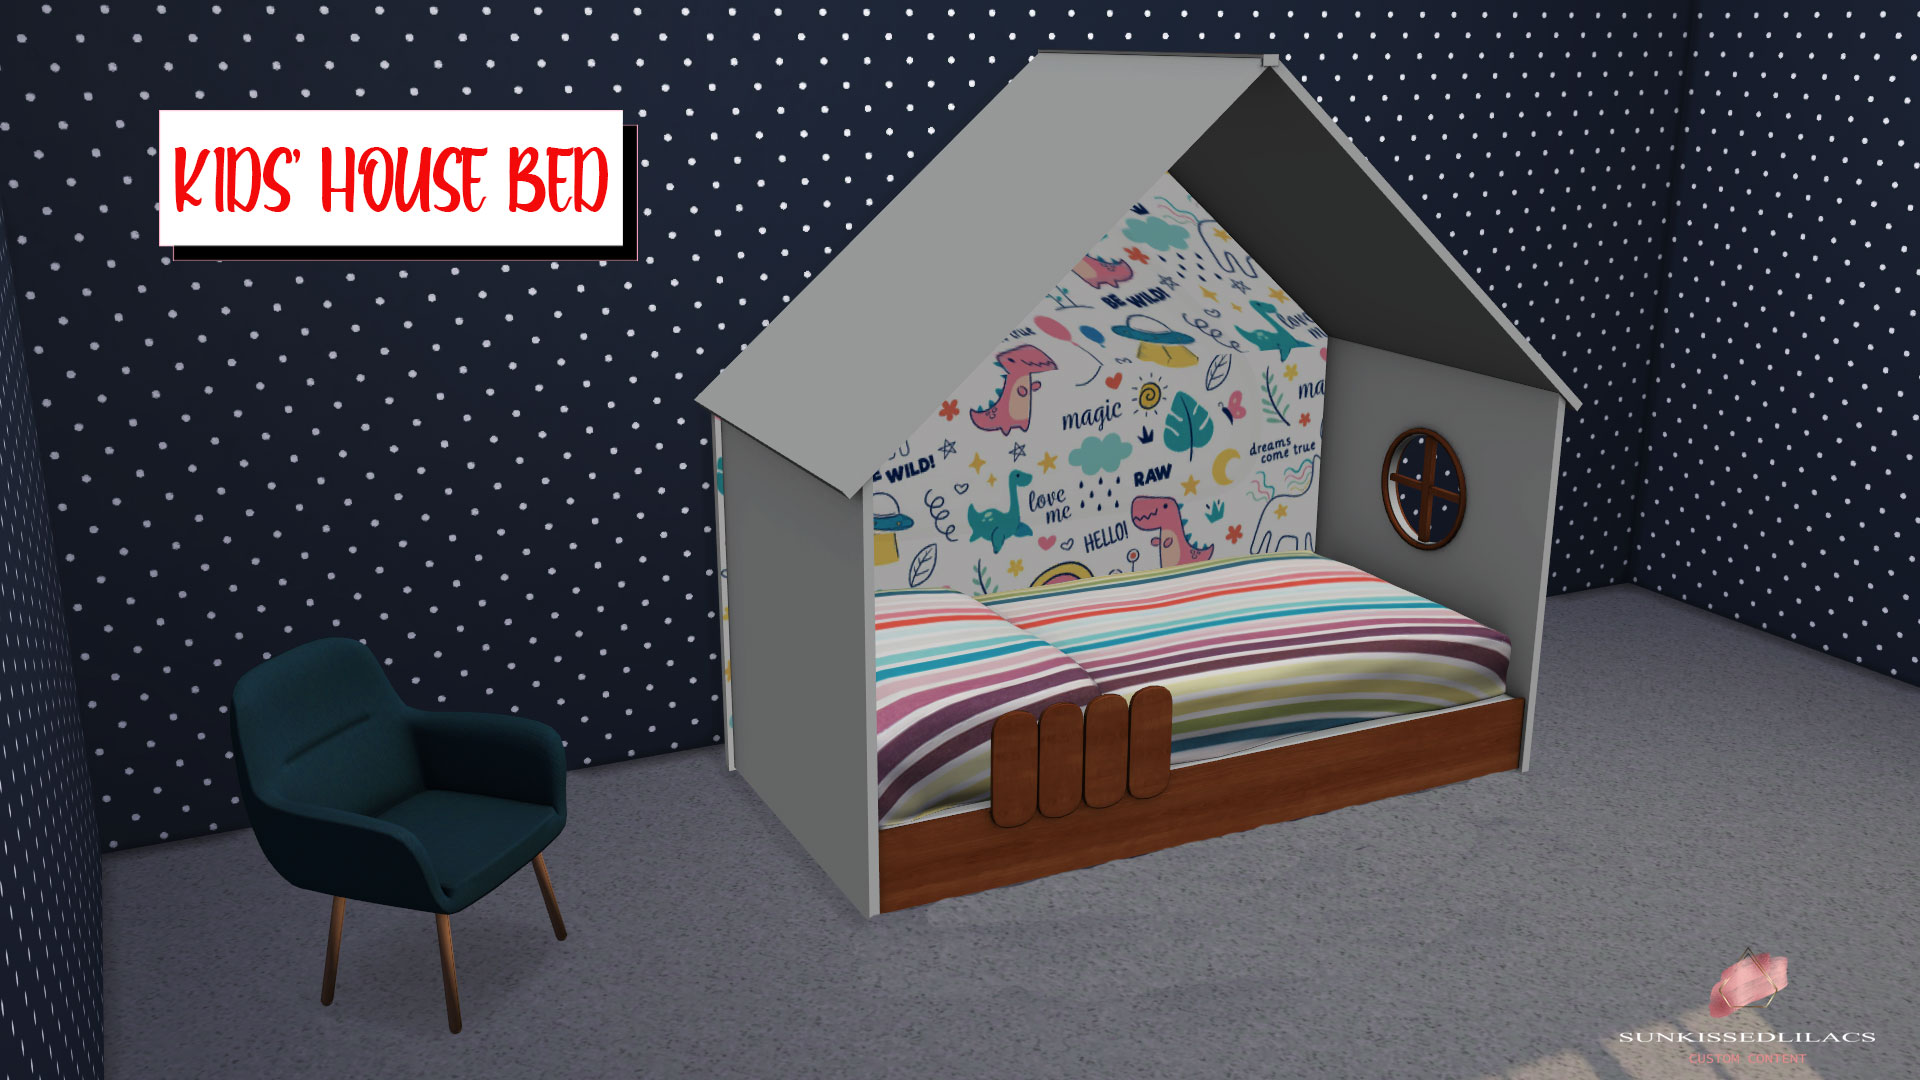 Kids' House Bed, high quality sims 4 cc, sunkissedlilacs, free sims 4 furniture, sims 4 cc,